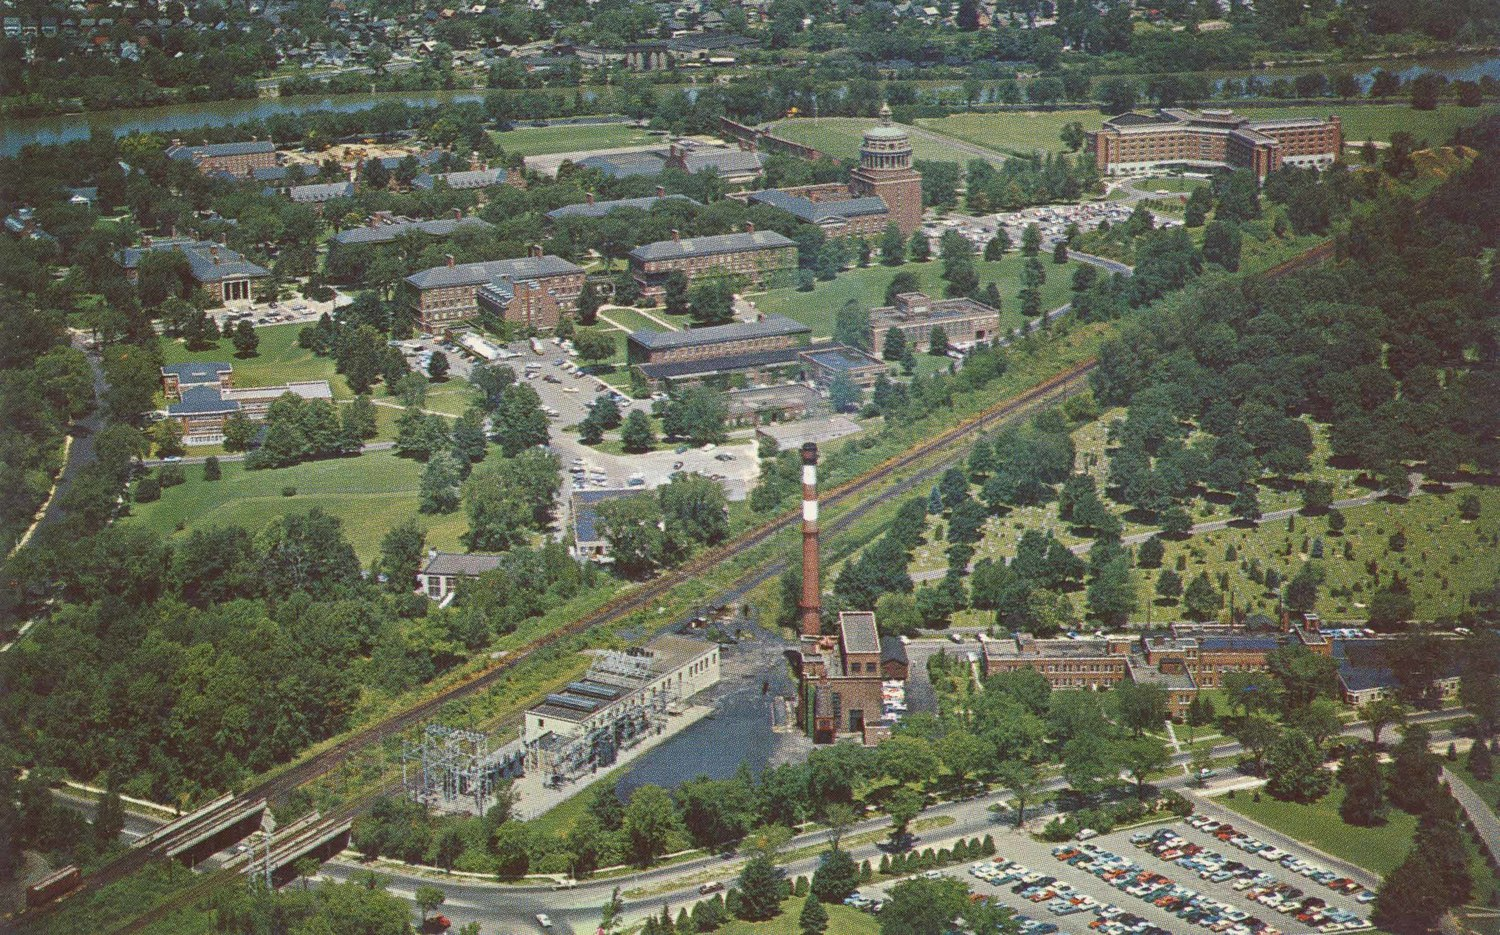 Aerial View of the University of Rochester Campus.